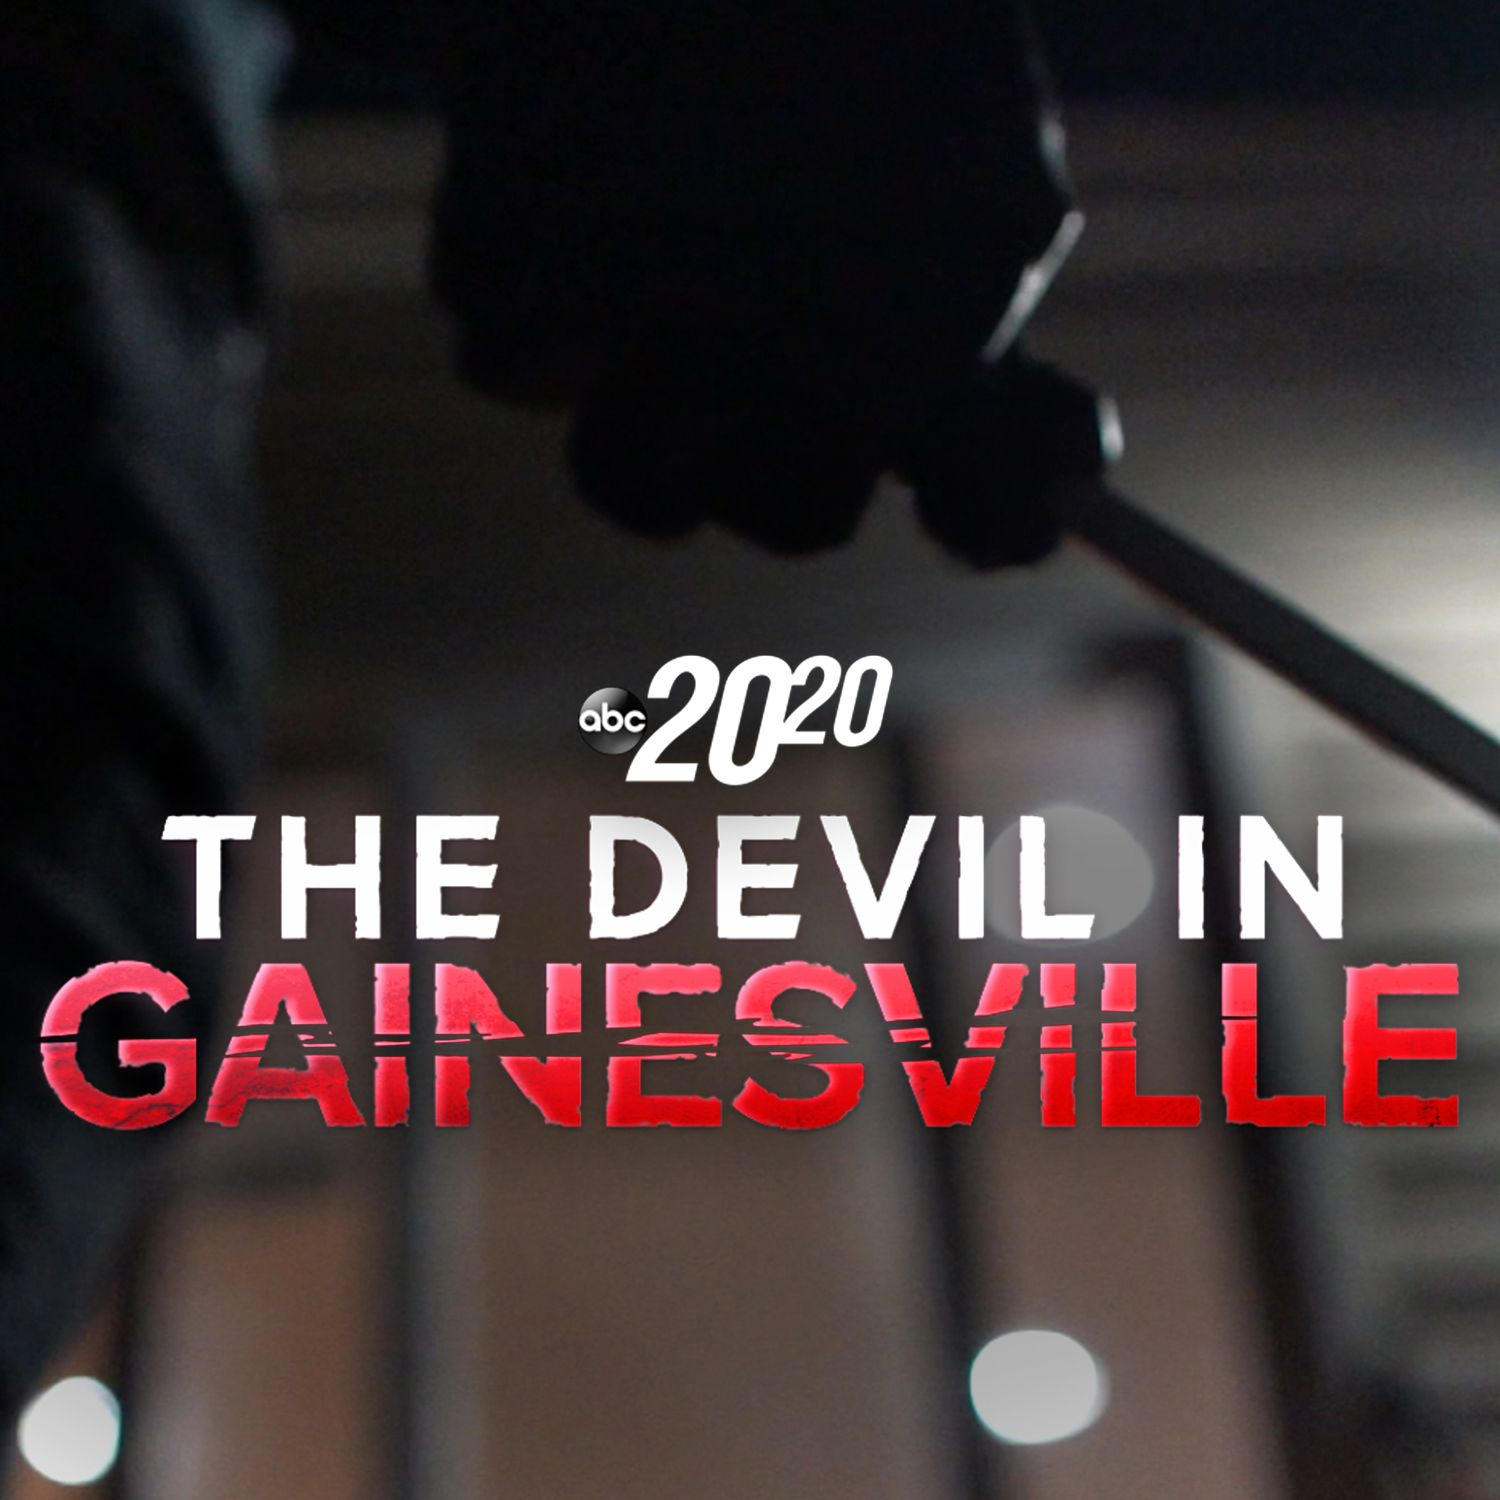 The Devil in Gainesville